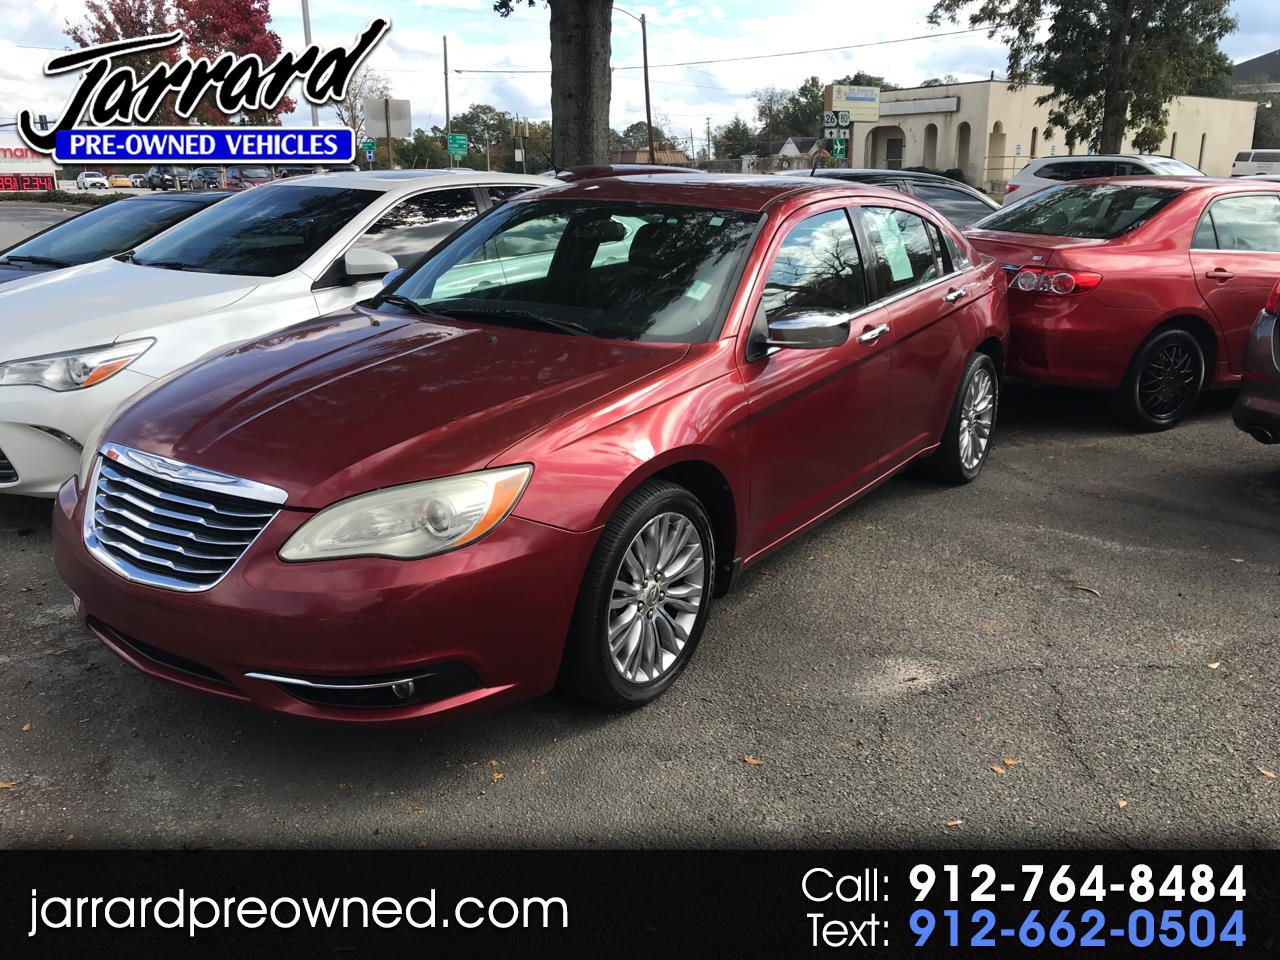 2011 Chrysler 200 4dr Sdn Limited